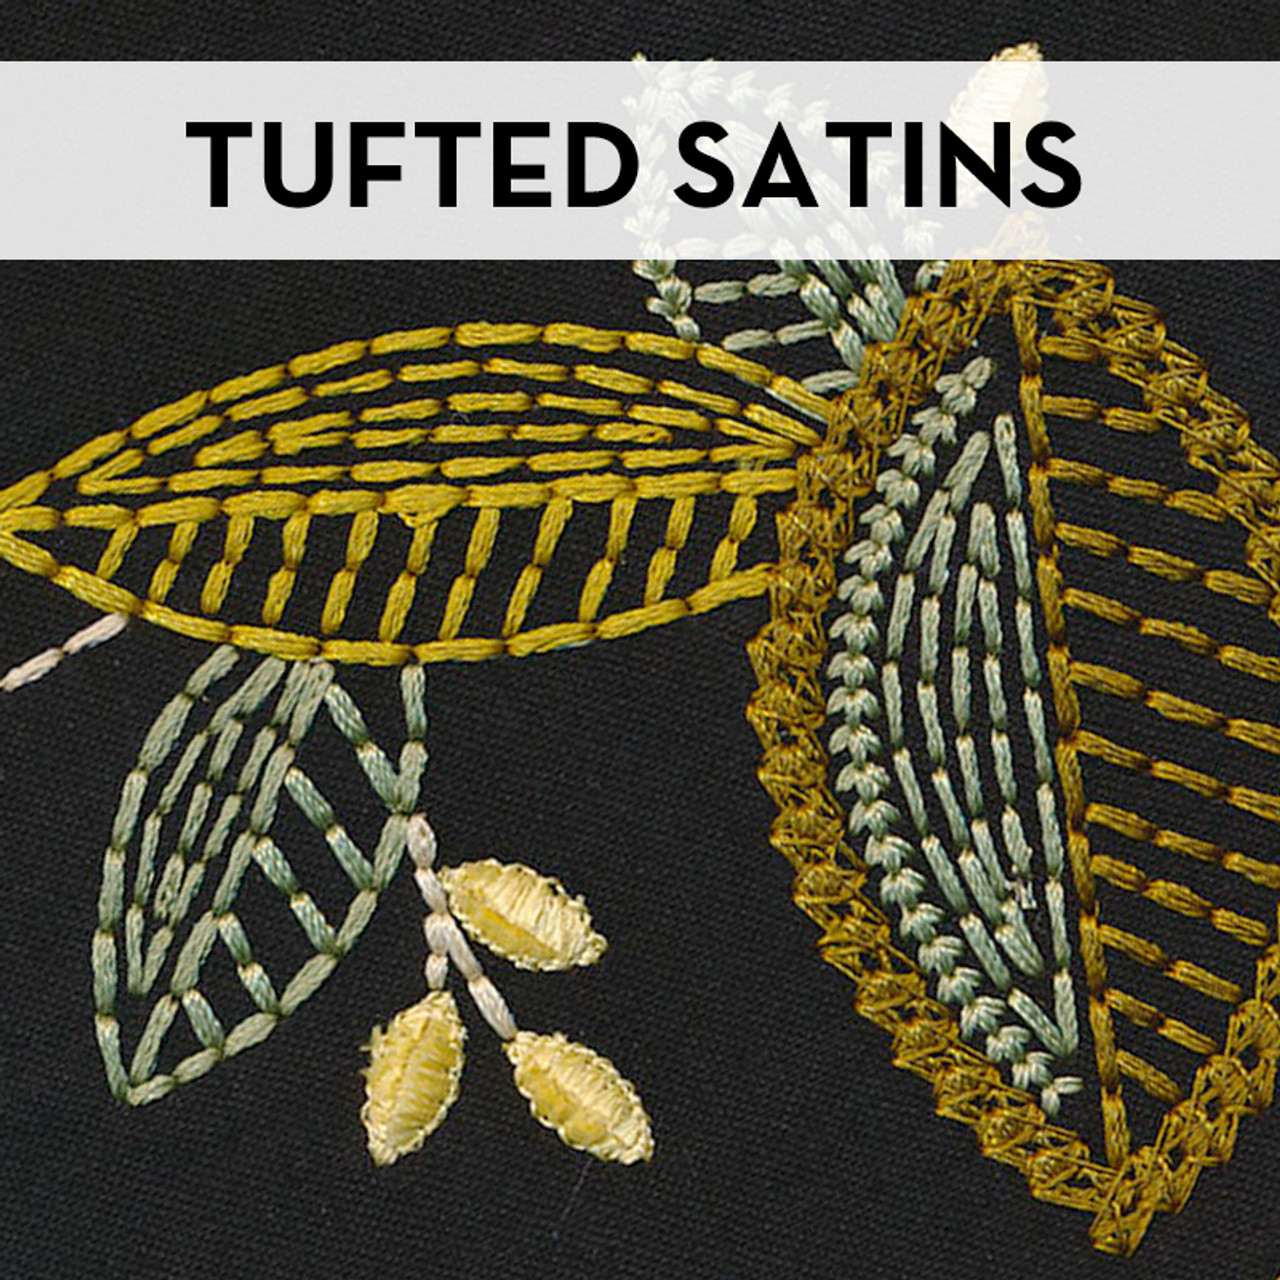 Tufted Satins